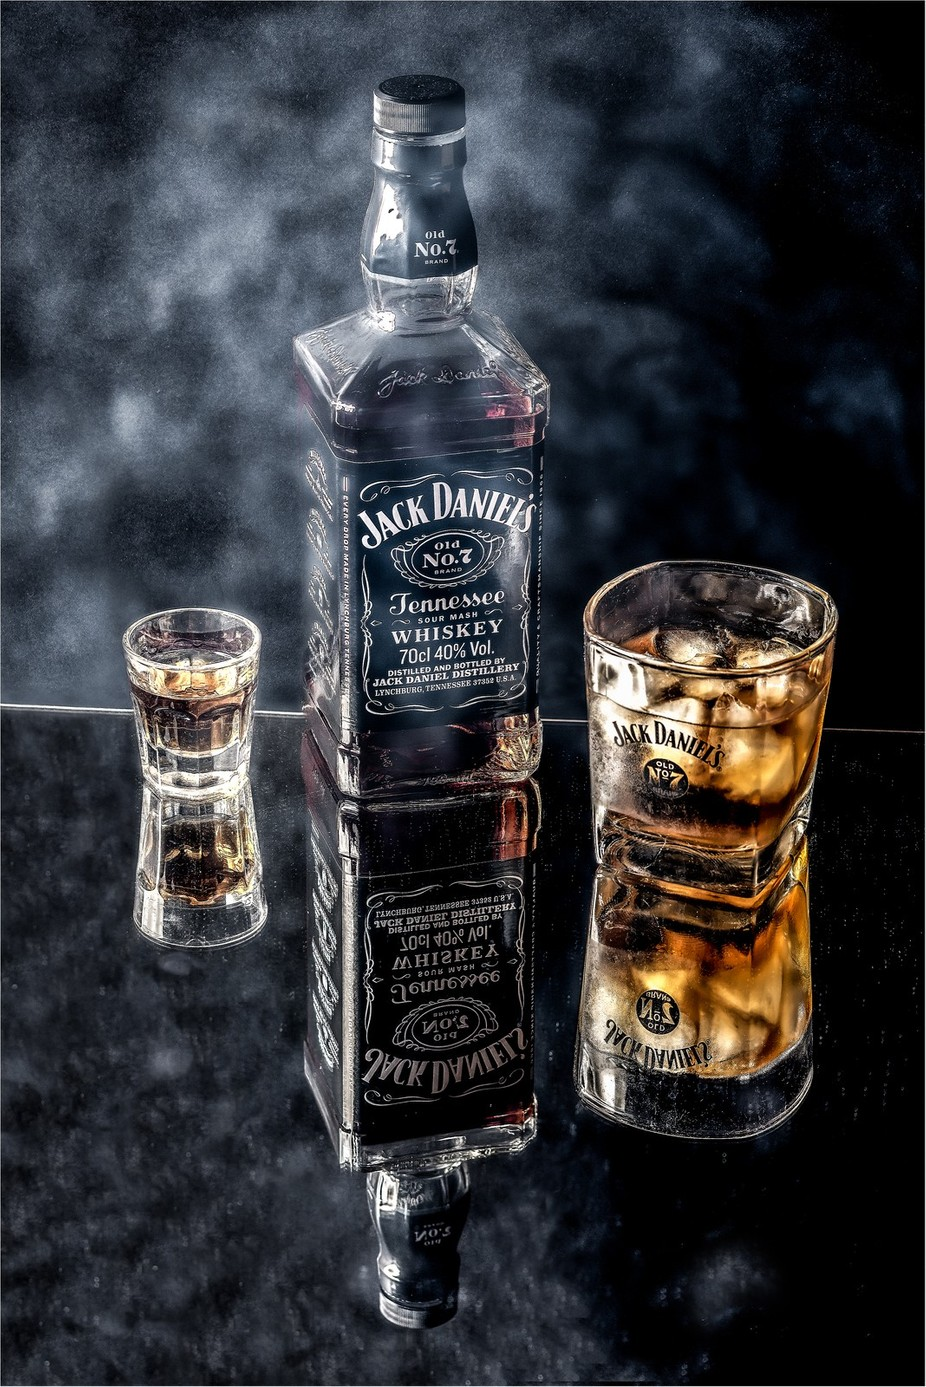 A Shot Of Jack Daniels On The Rocks by Clare1981 - Commercial Shots Photo Contest 2018